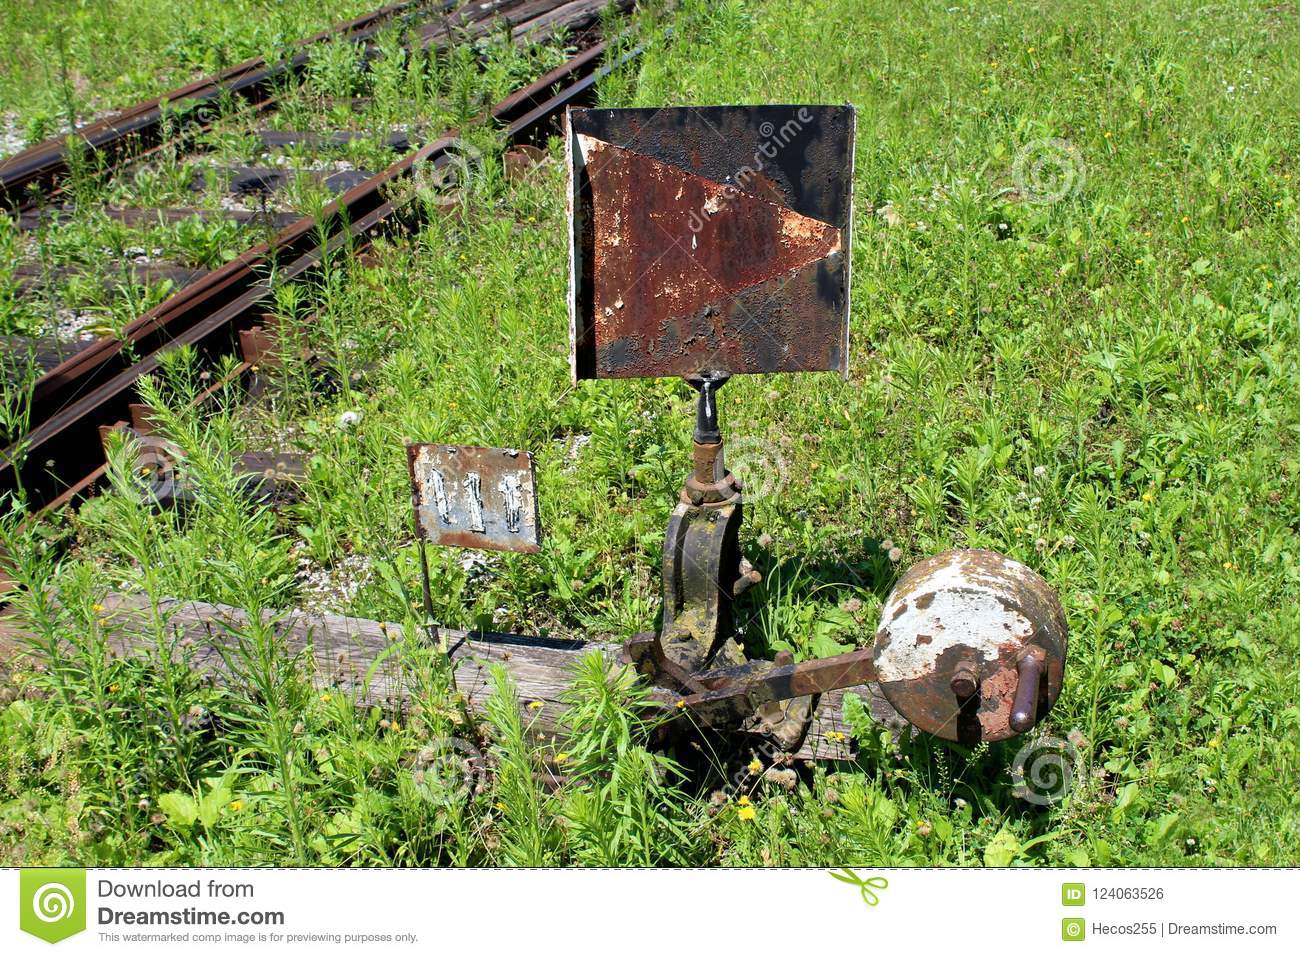 Rusted metal black and white railway switch mechanism with metal sign mounted on wooden board